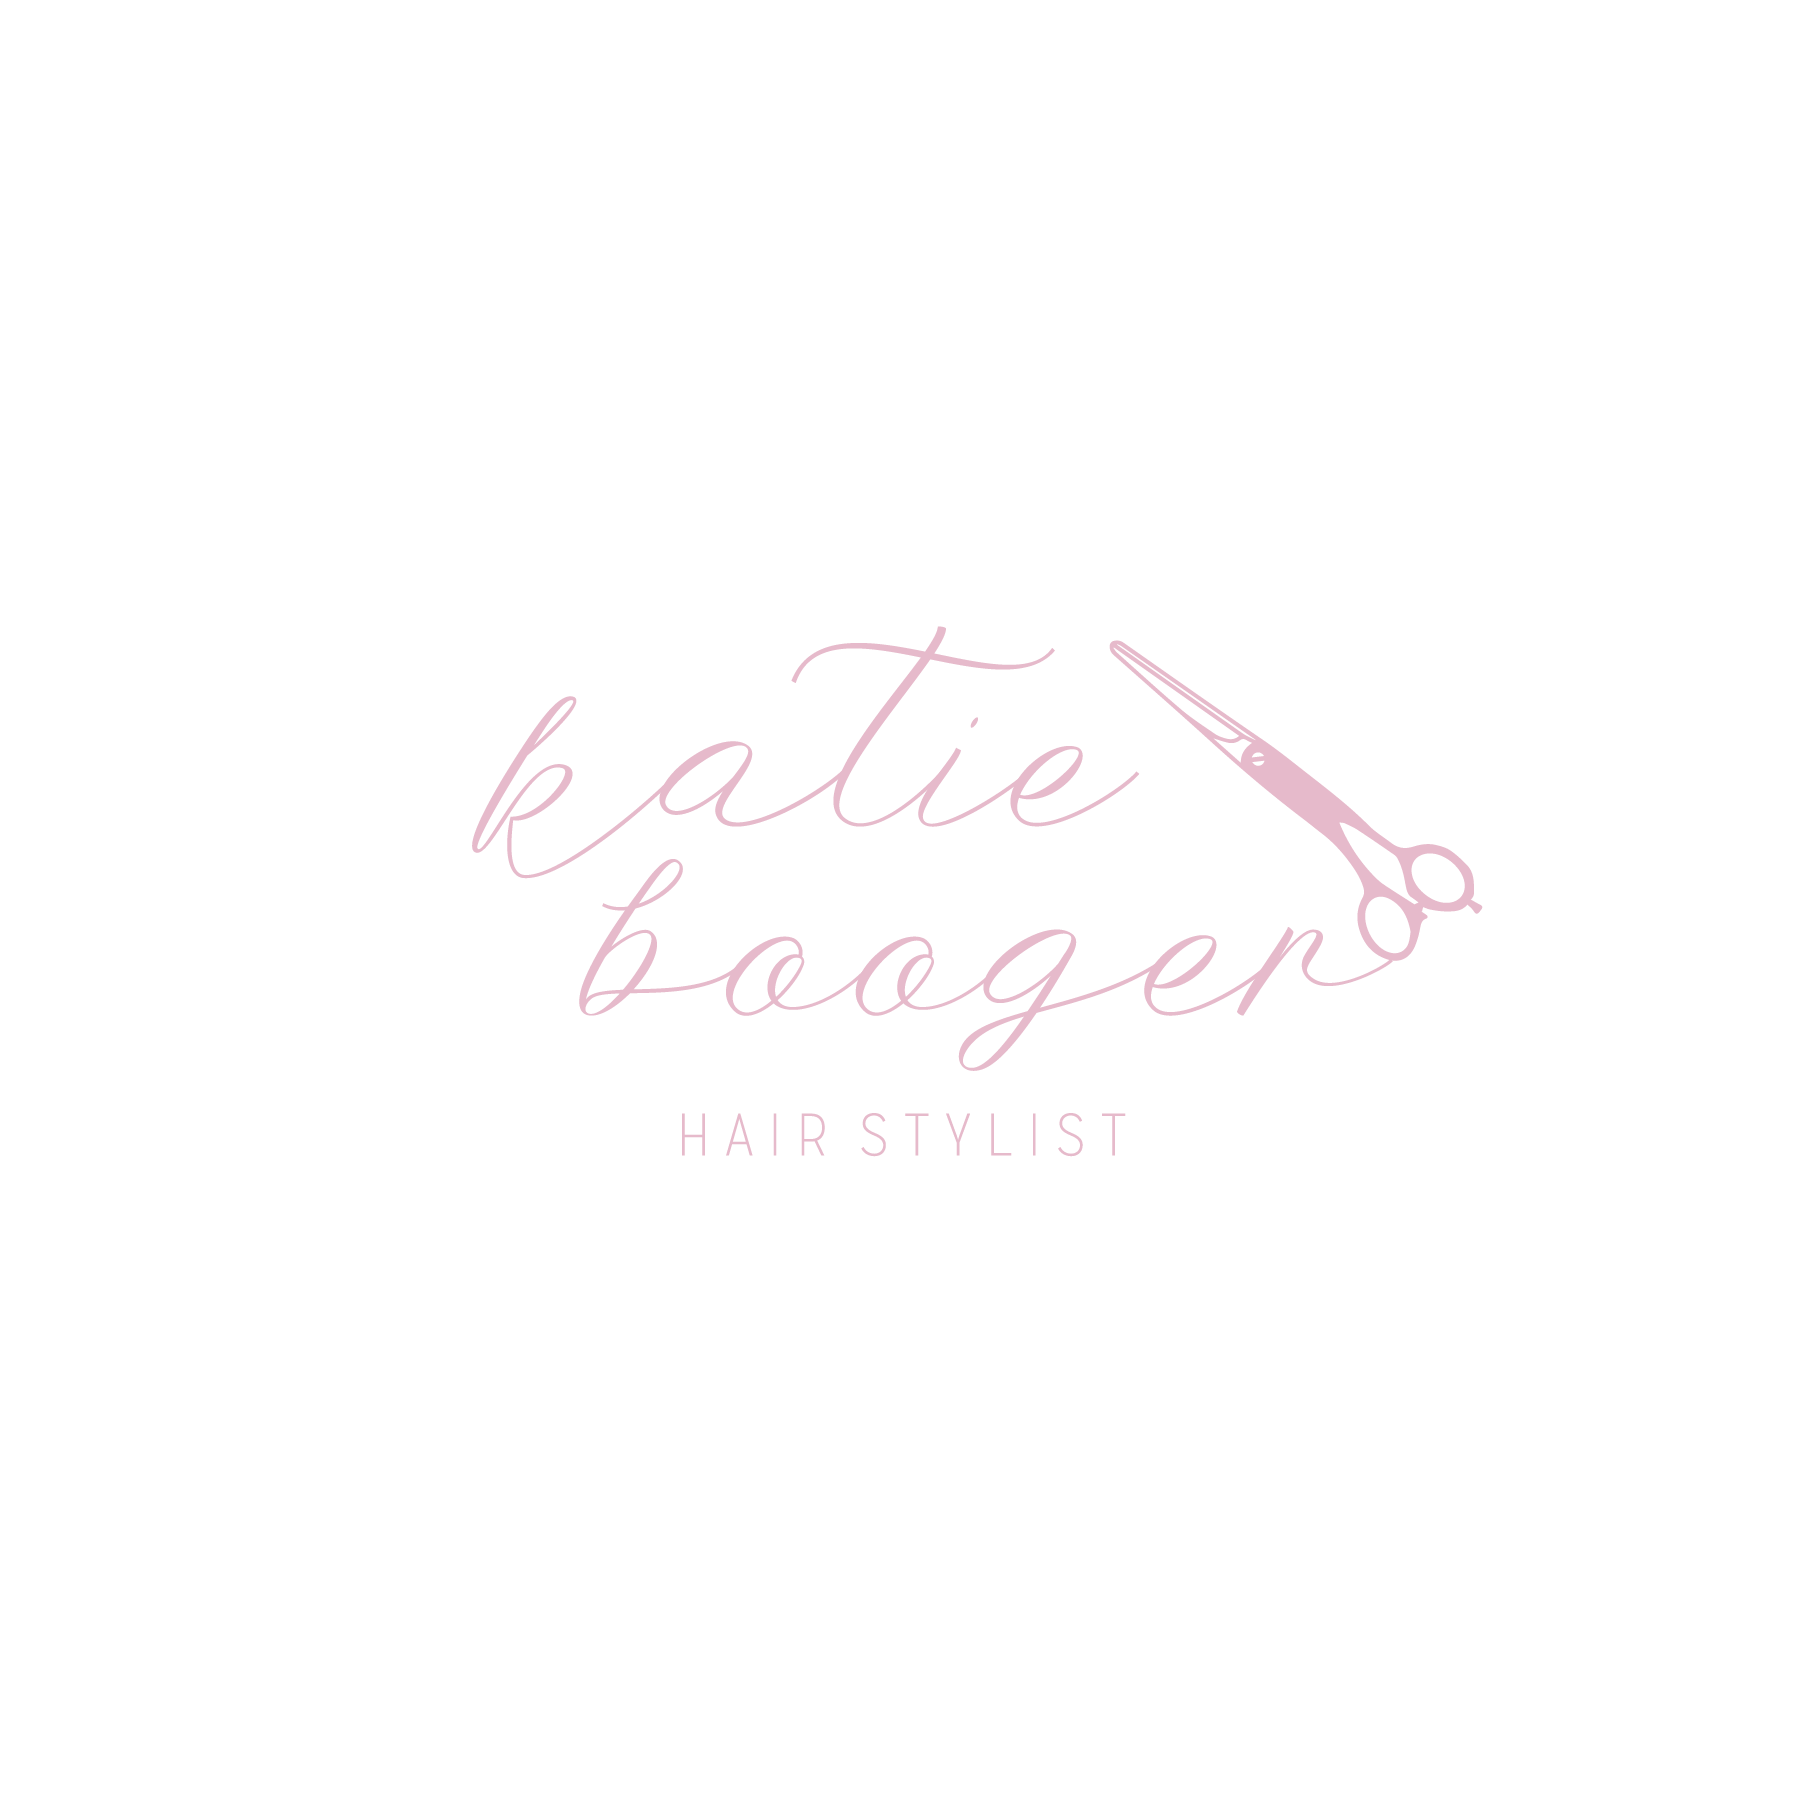 Katie Booger Hair Stylist_Pink-12.png